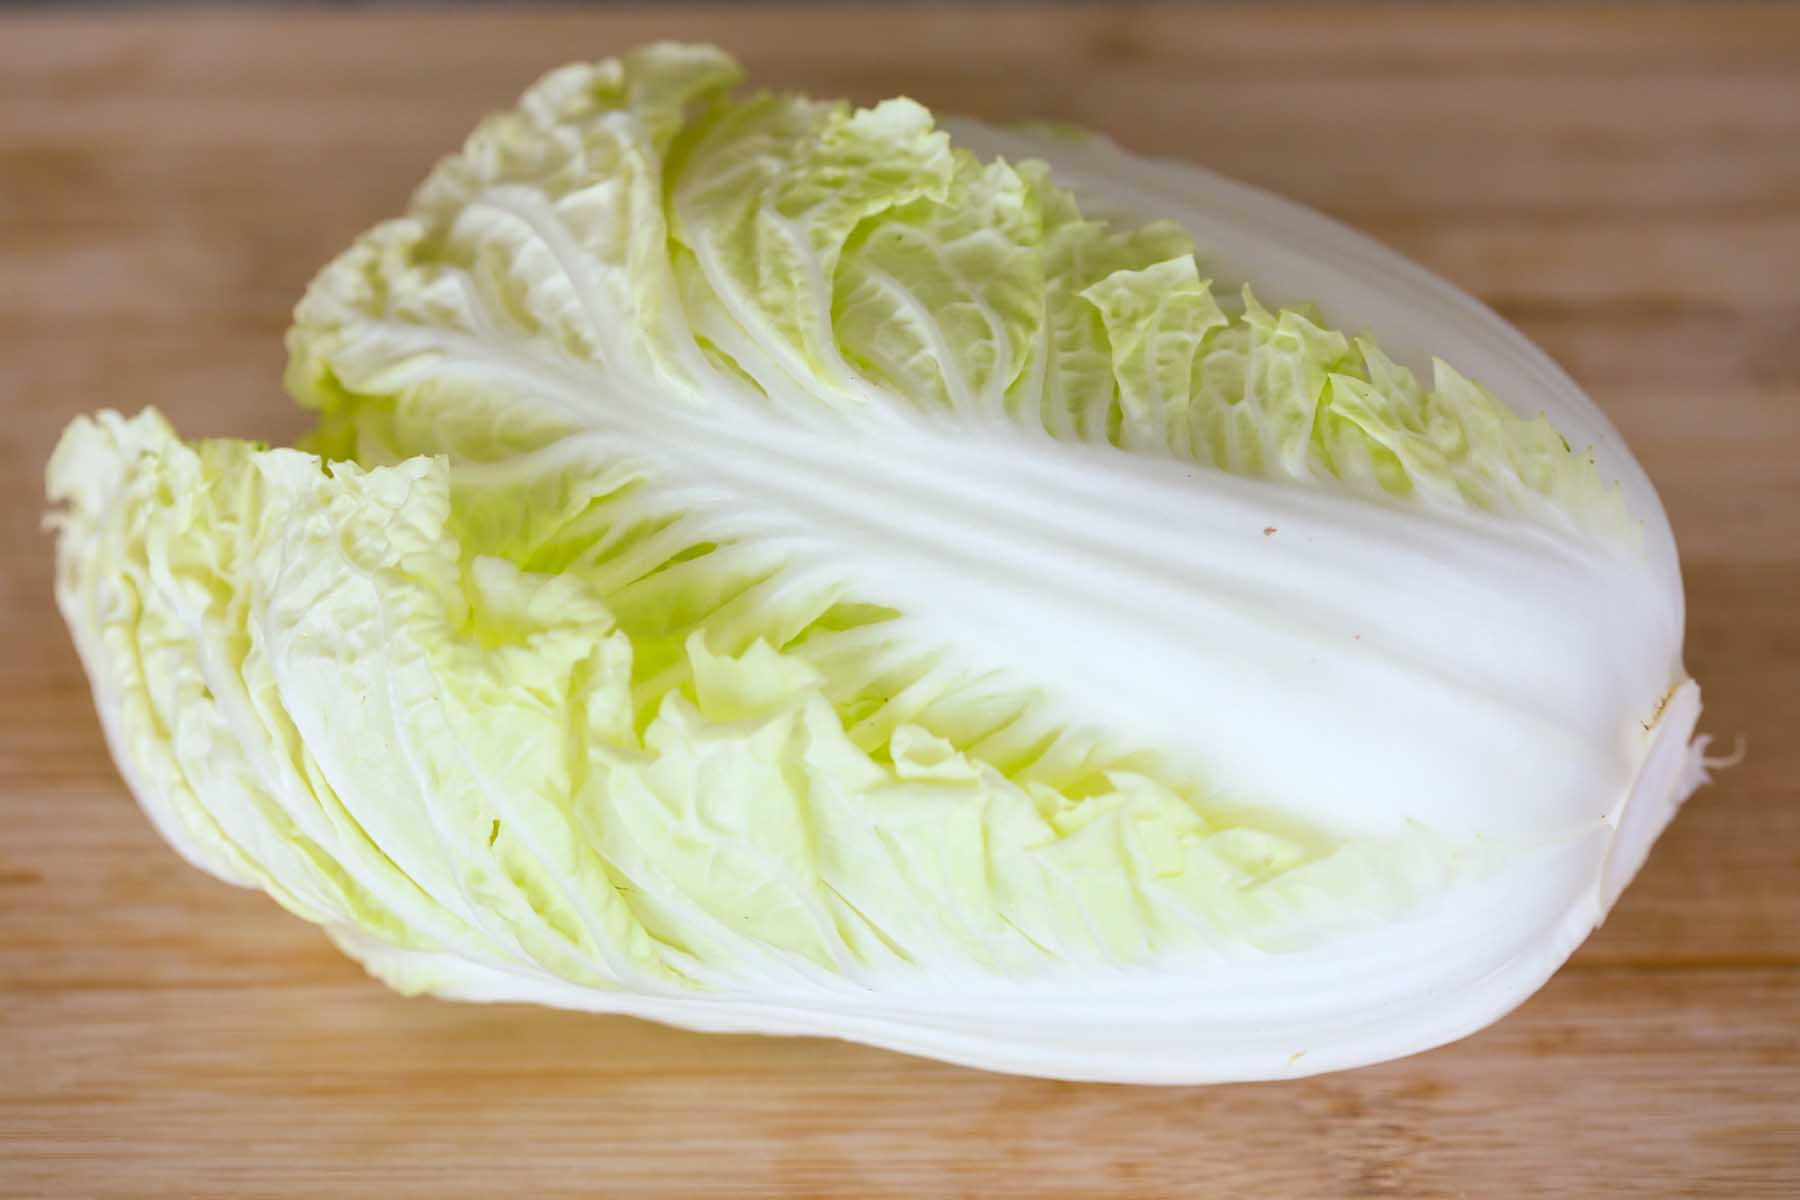 Napa cabbage on a cutting board.